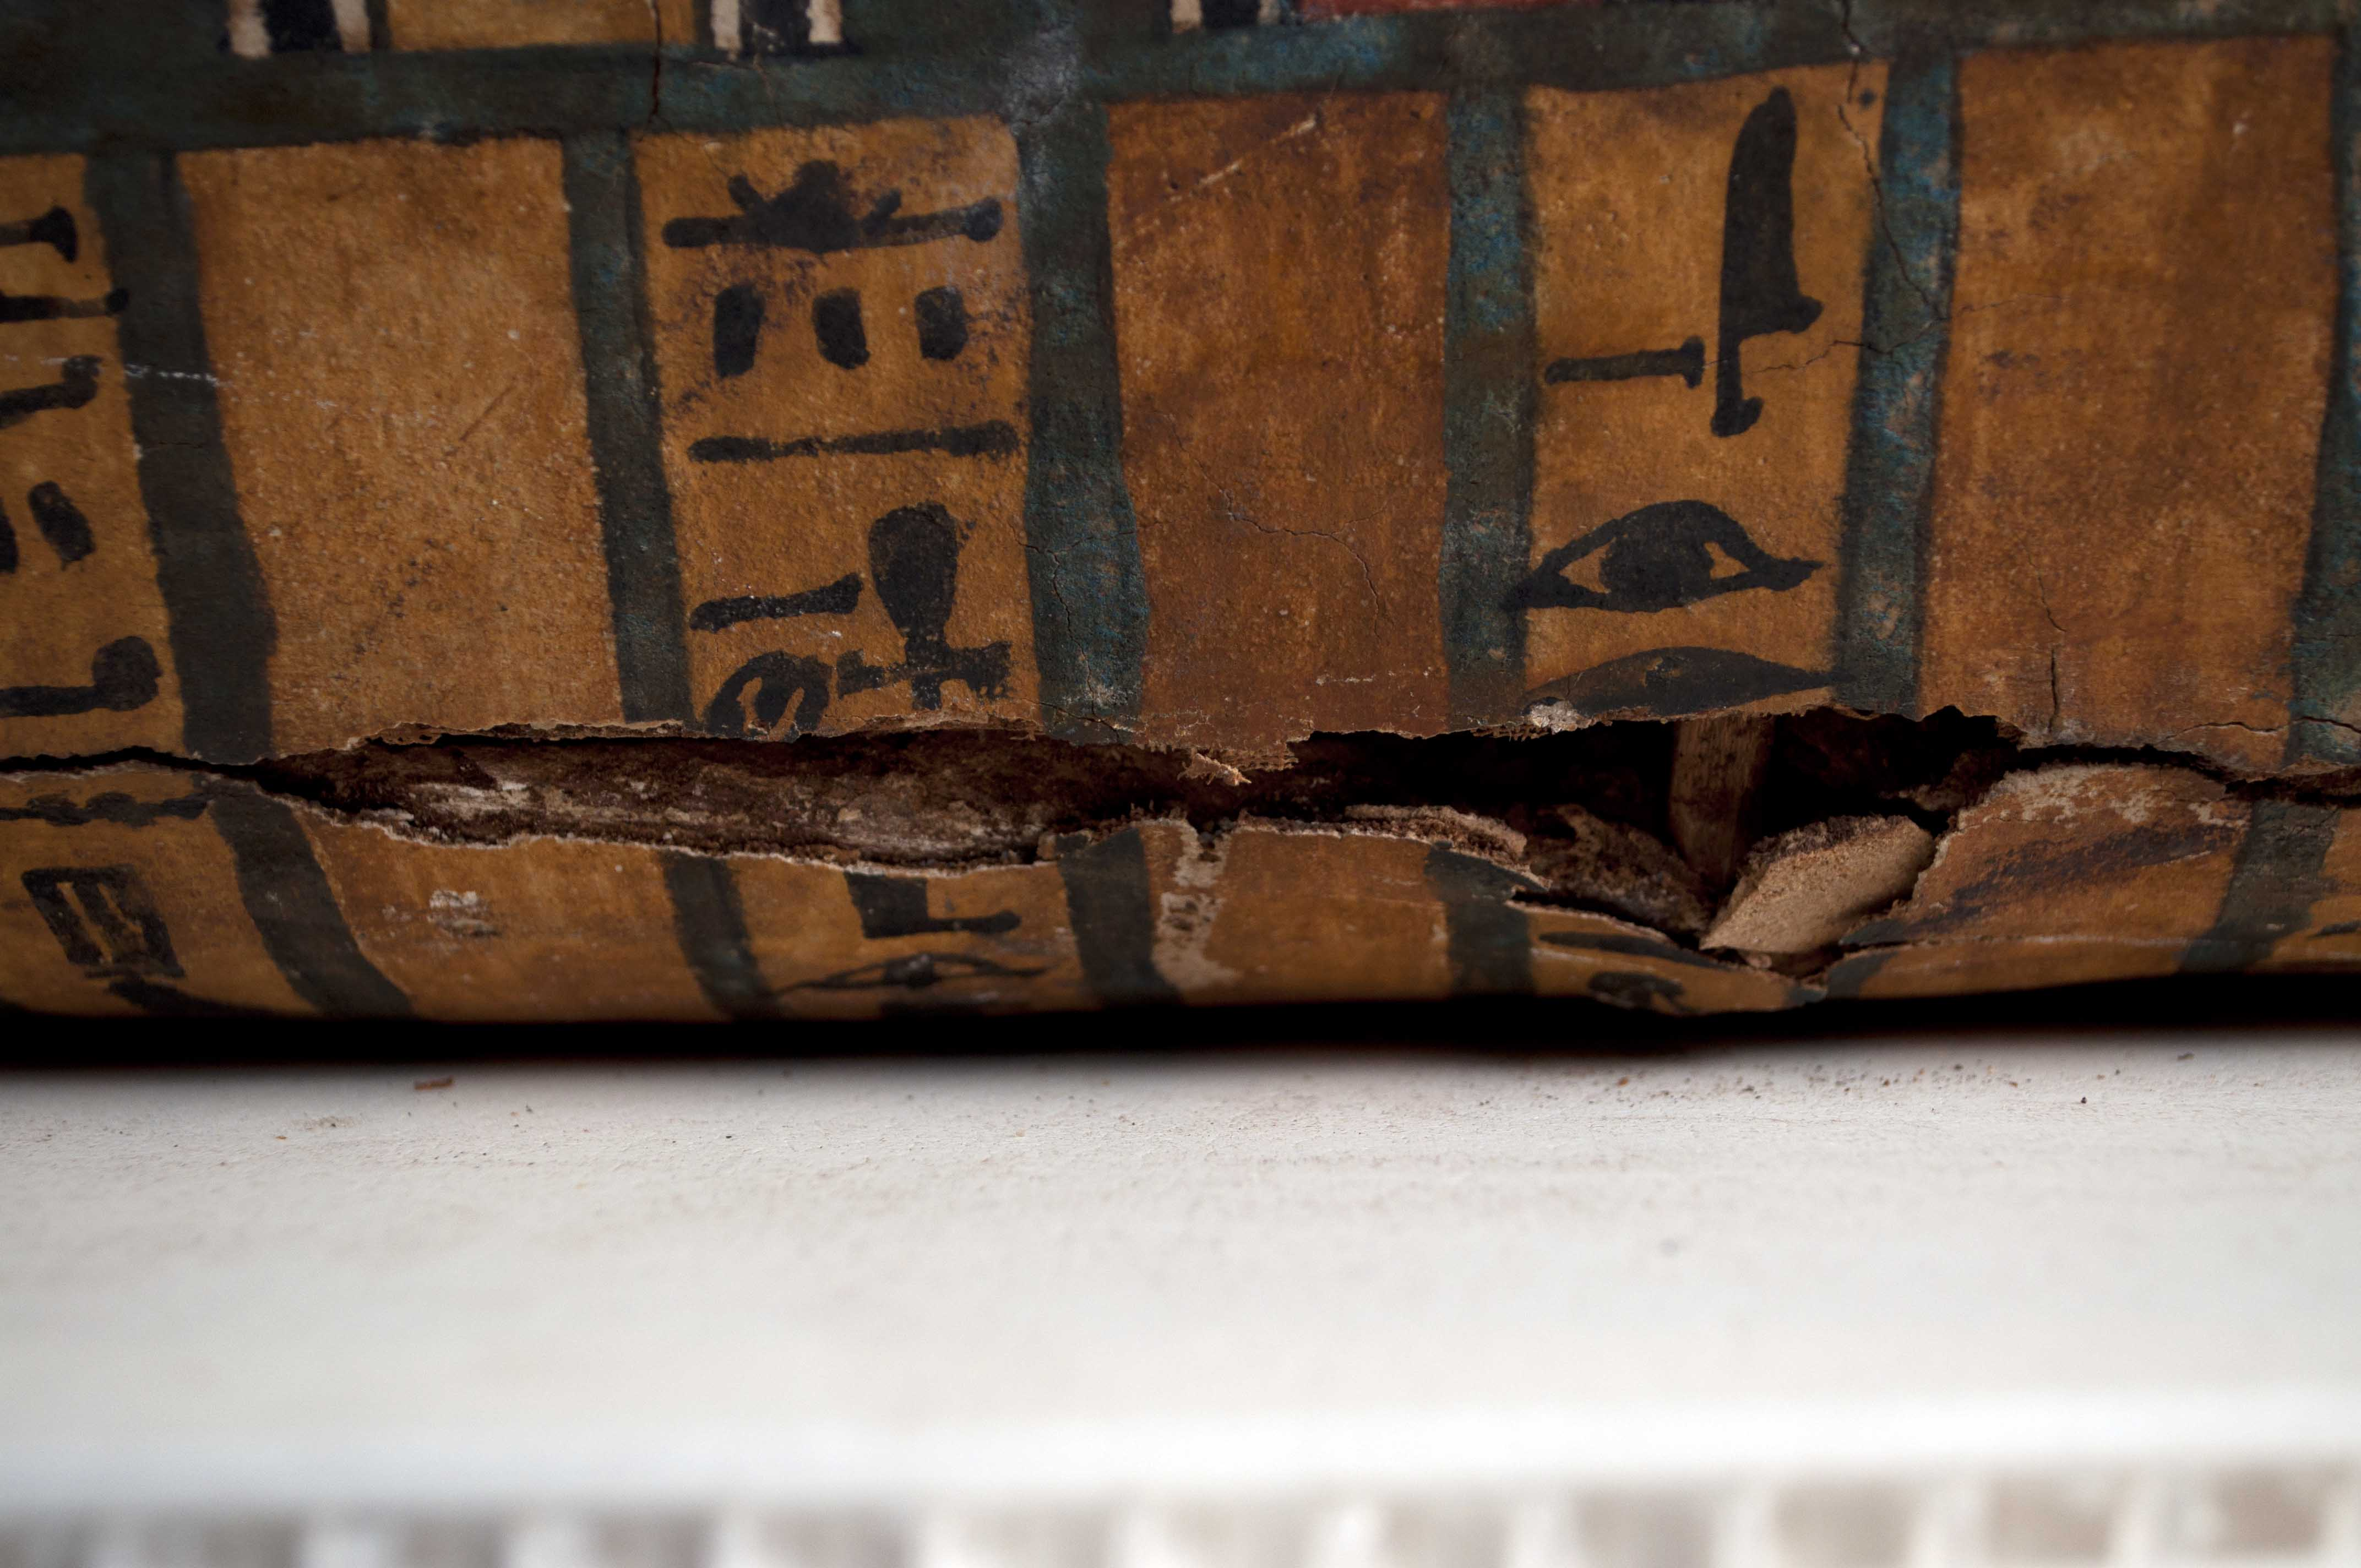 Detail of damage on the proper left side of the coffin.